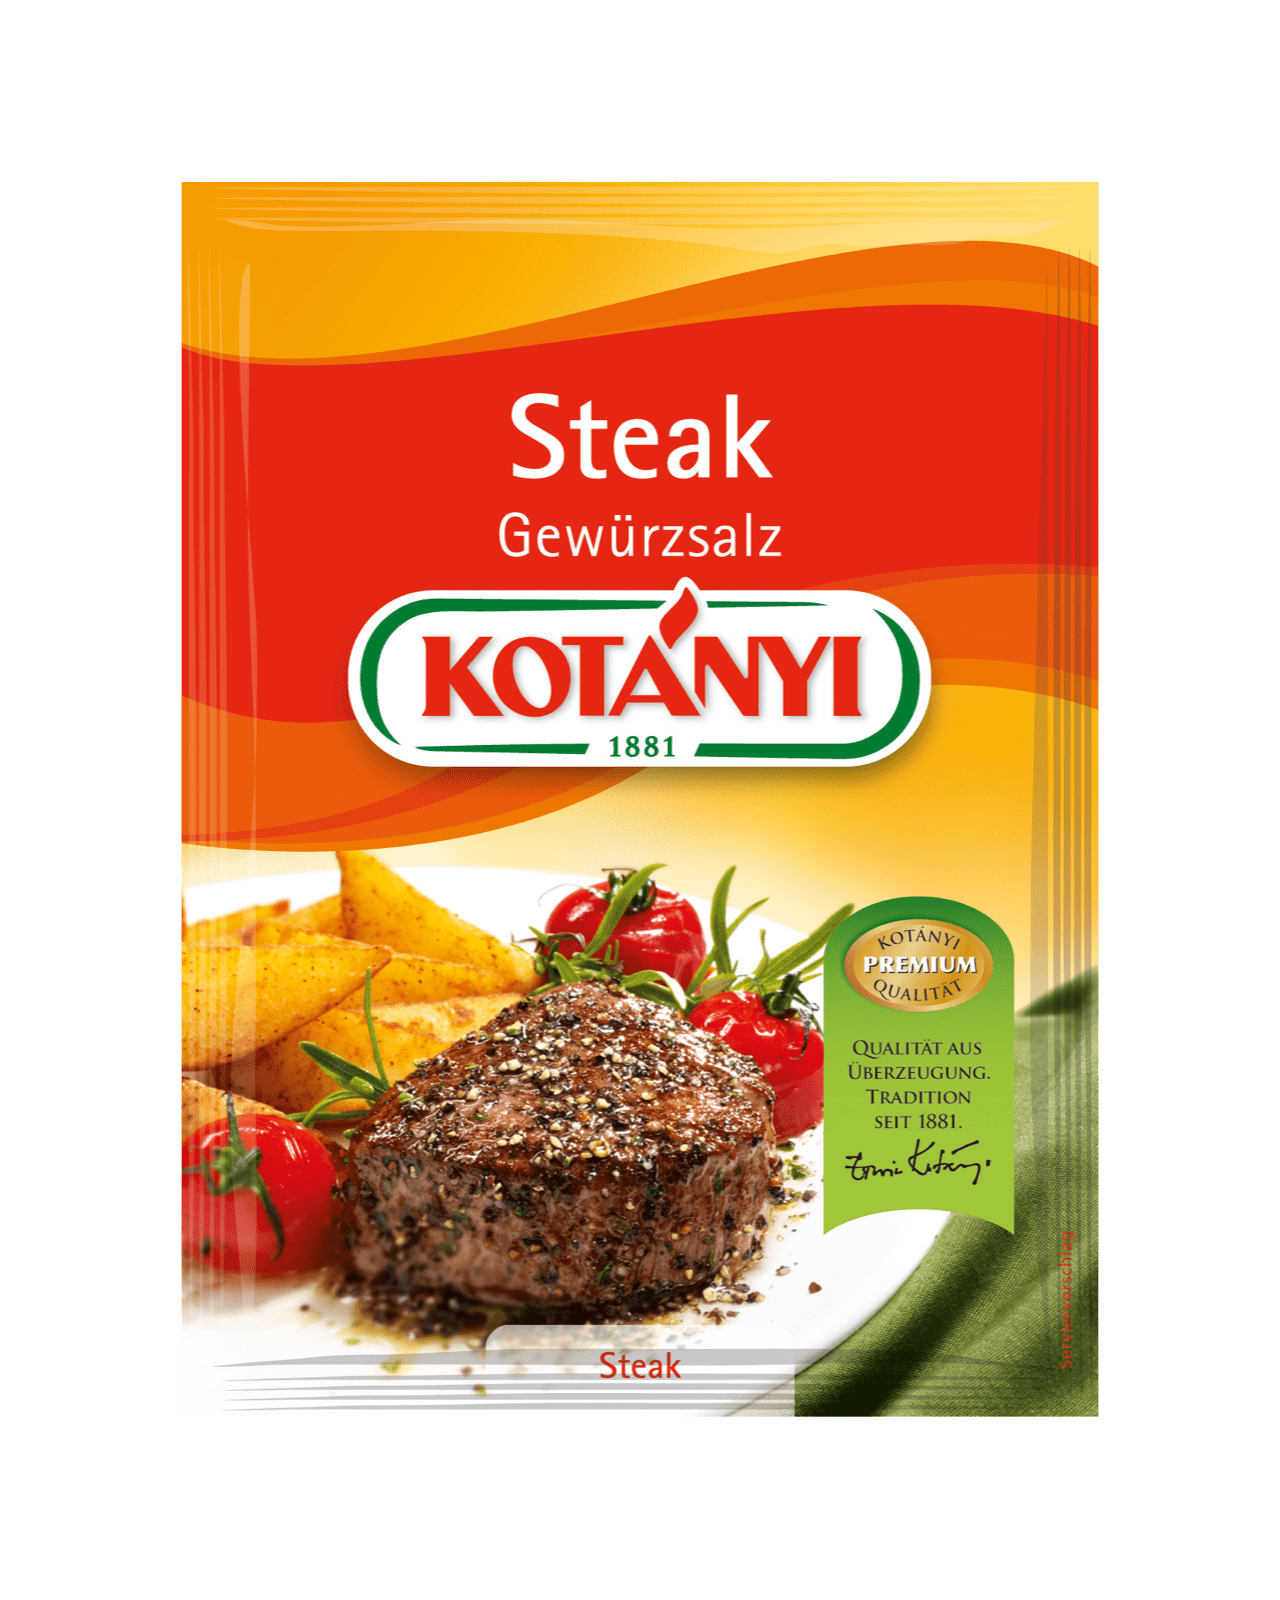 Kotányi Steak Gewürzsalz im Brief